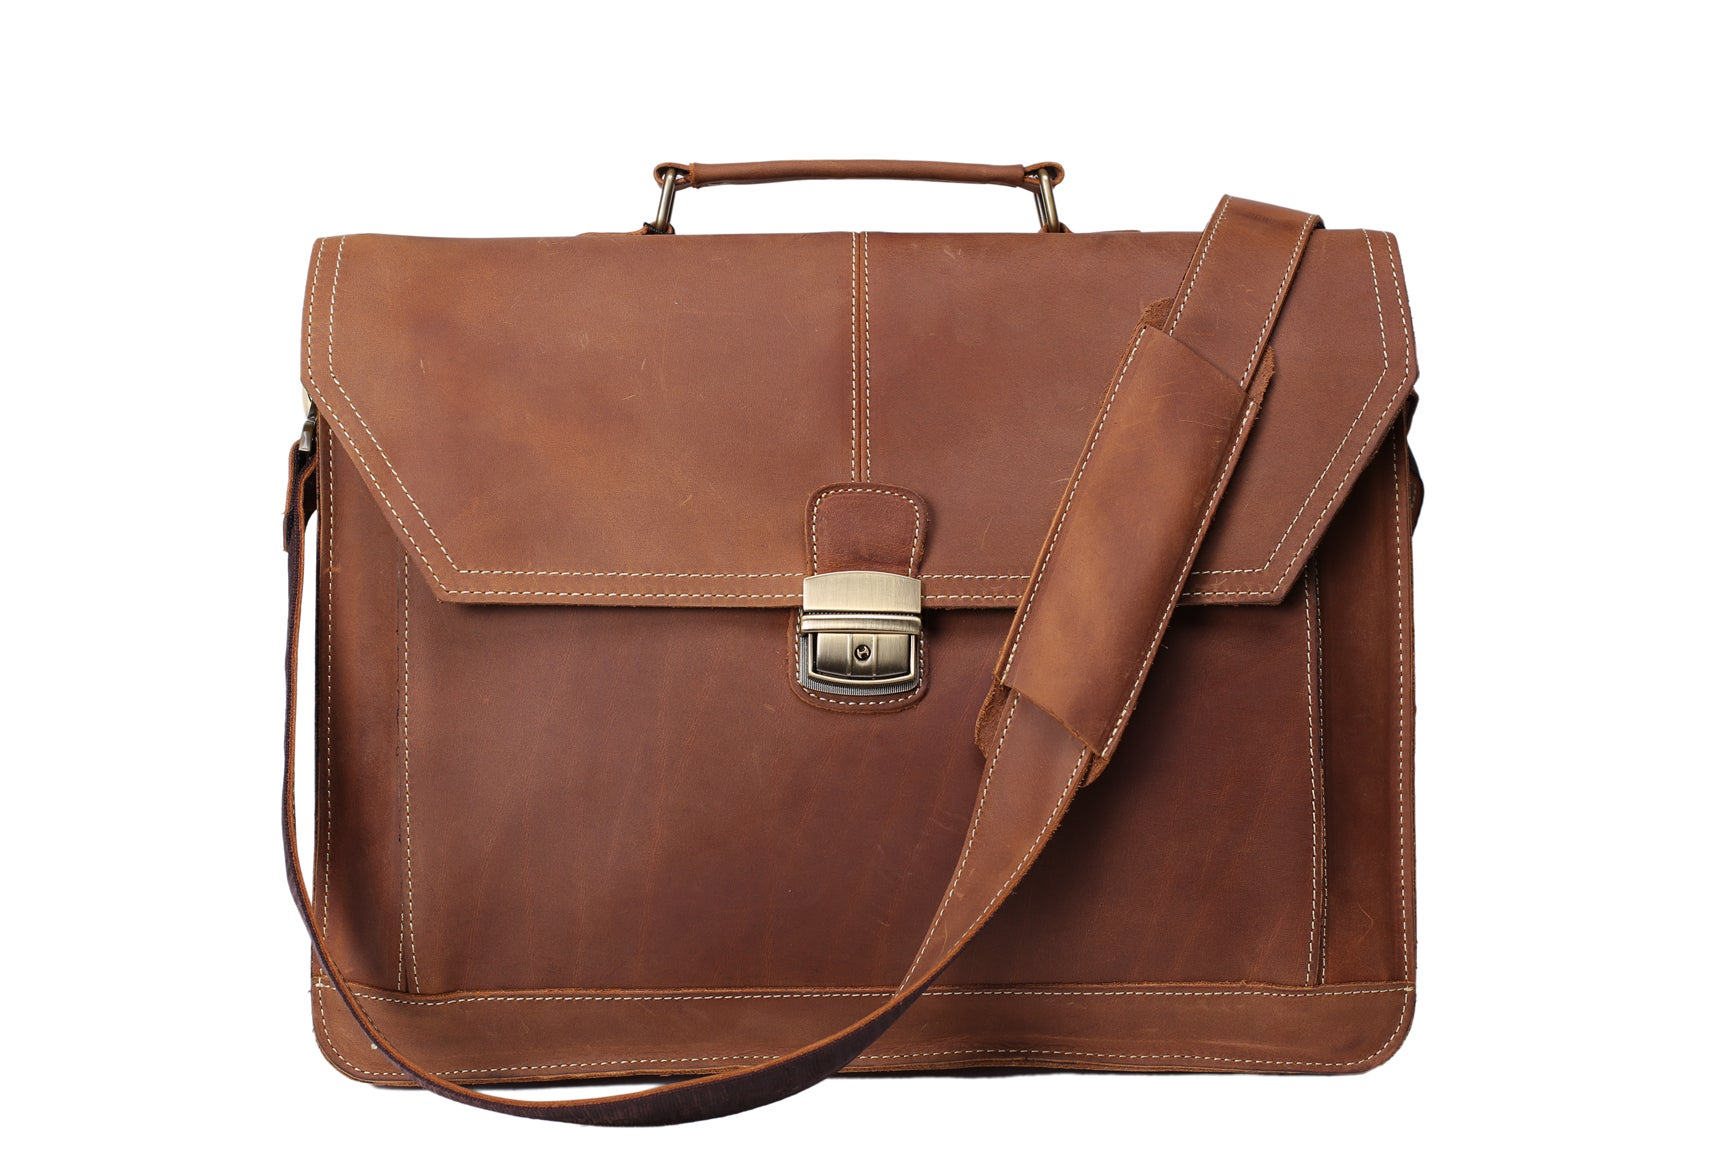 7ab9b7ec1d MoshiLeatherBag - Handmade Leather Bag Manufacturer — Handmade Vintage  Leather Briefcase Men Messenger Bag Laptop Bag 7083